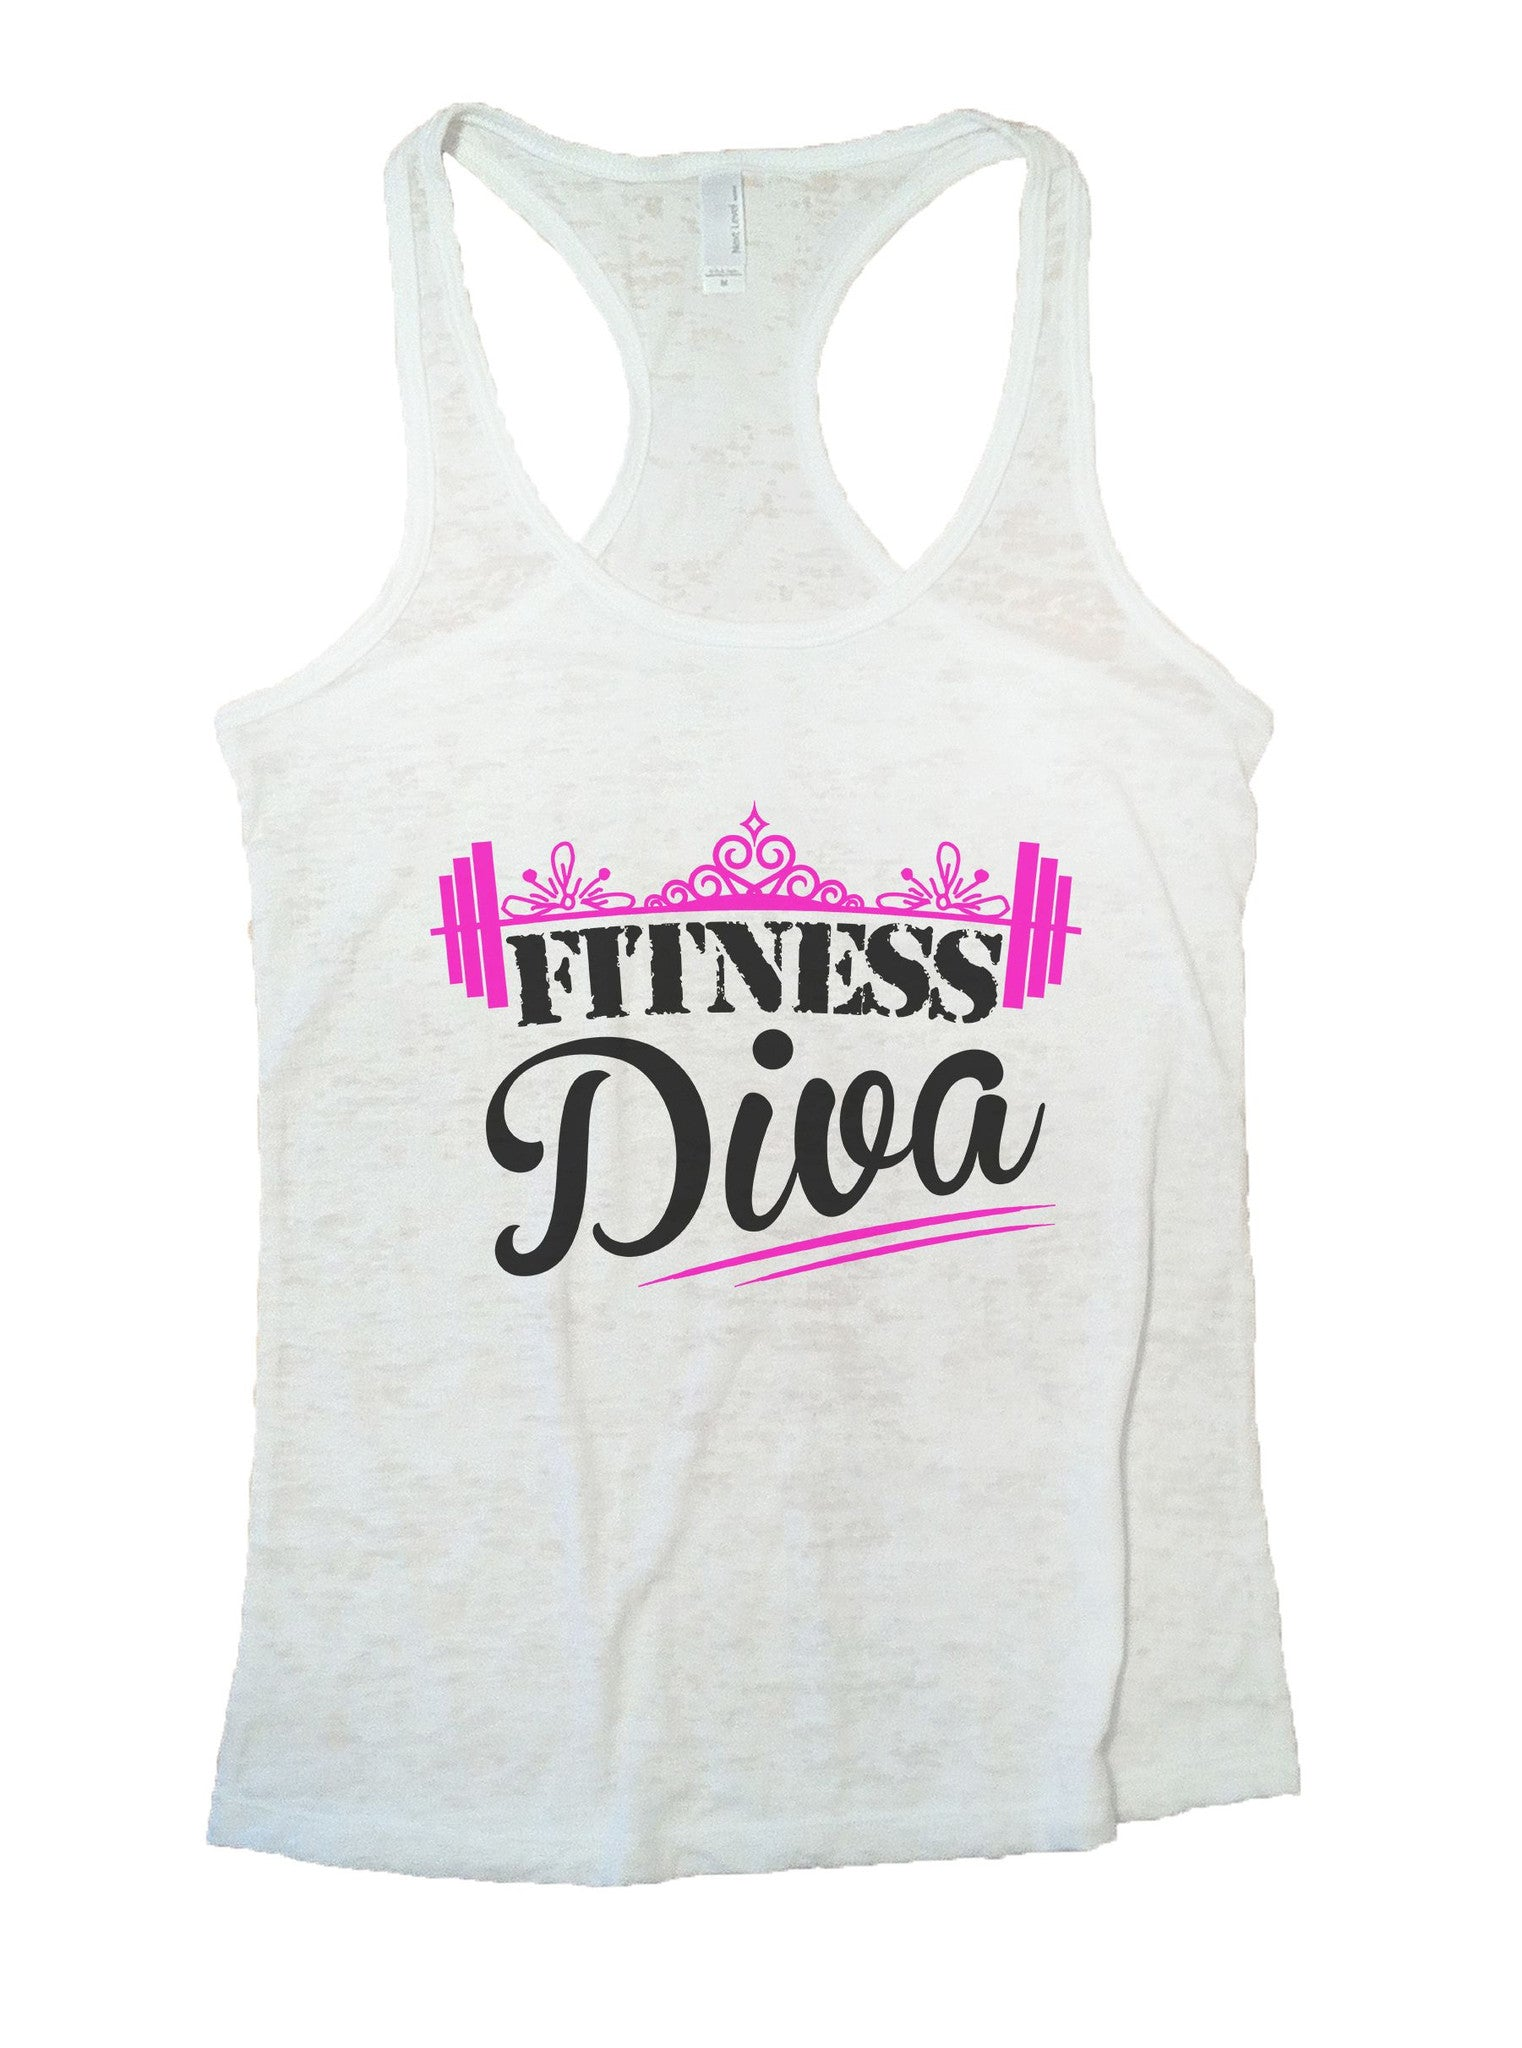 Fitness Diva Burnout Tank Top By BurnoutTankTops.com - 1050 - Funny Shirts Tank Tops Burnouts and Triblends  - 6